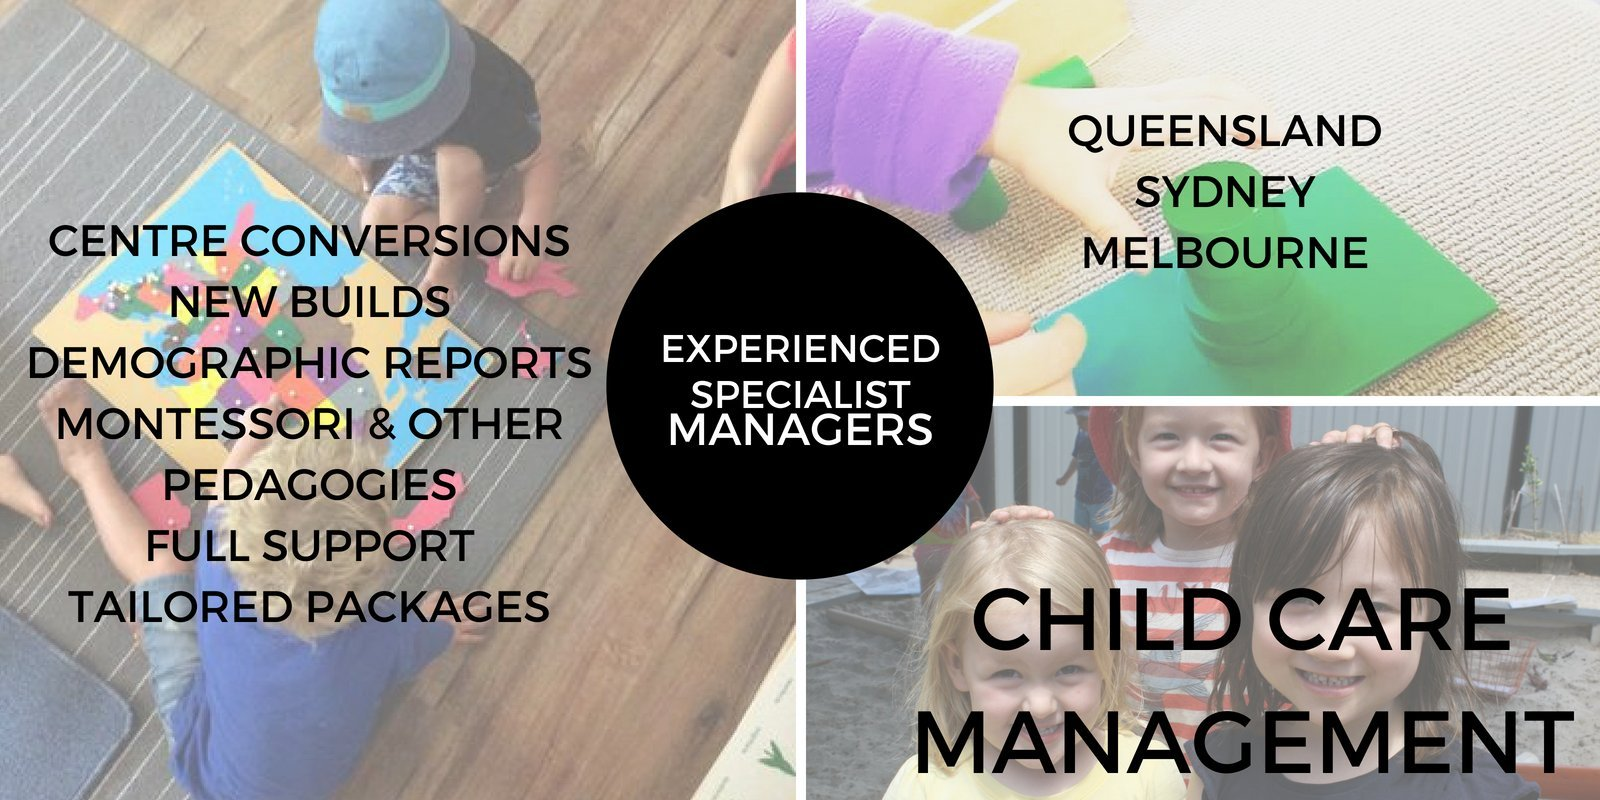 Child Care Management